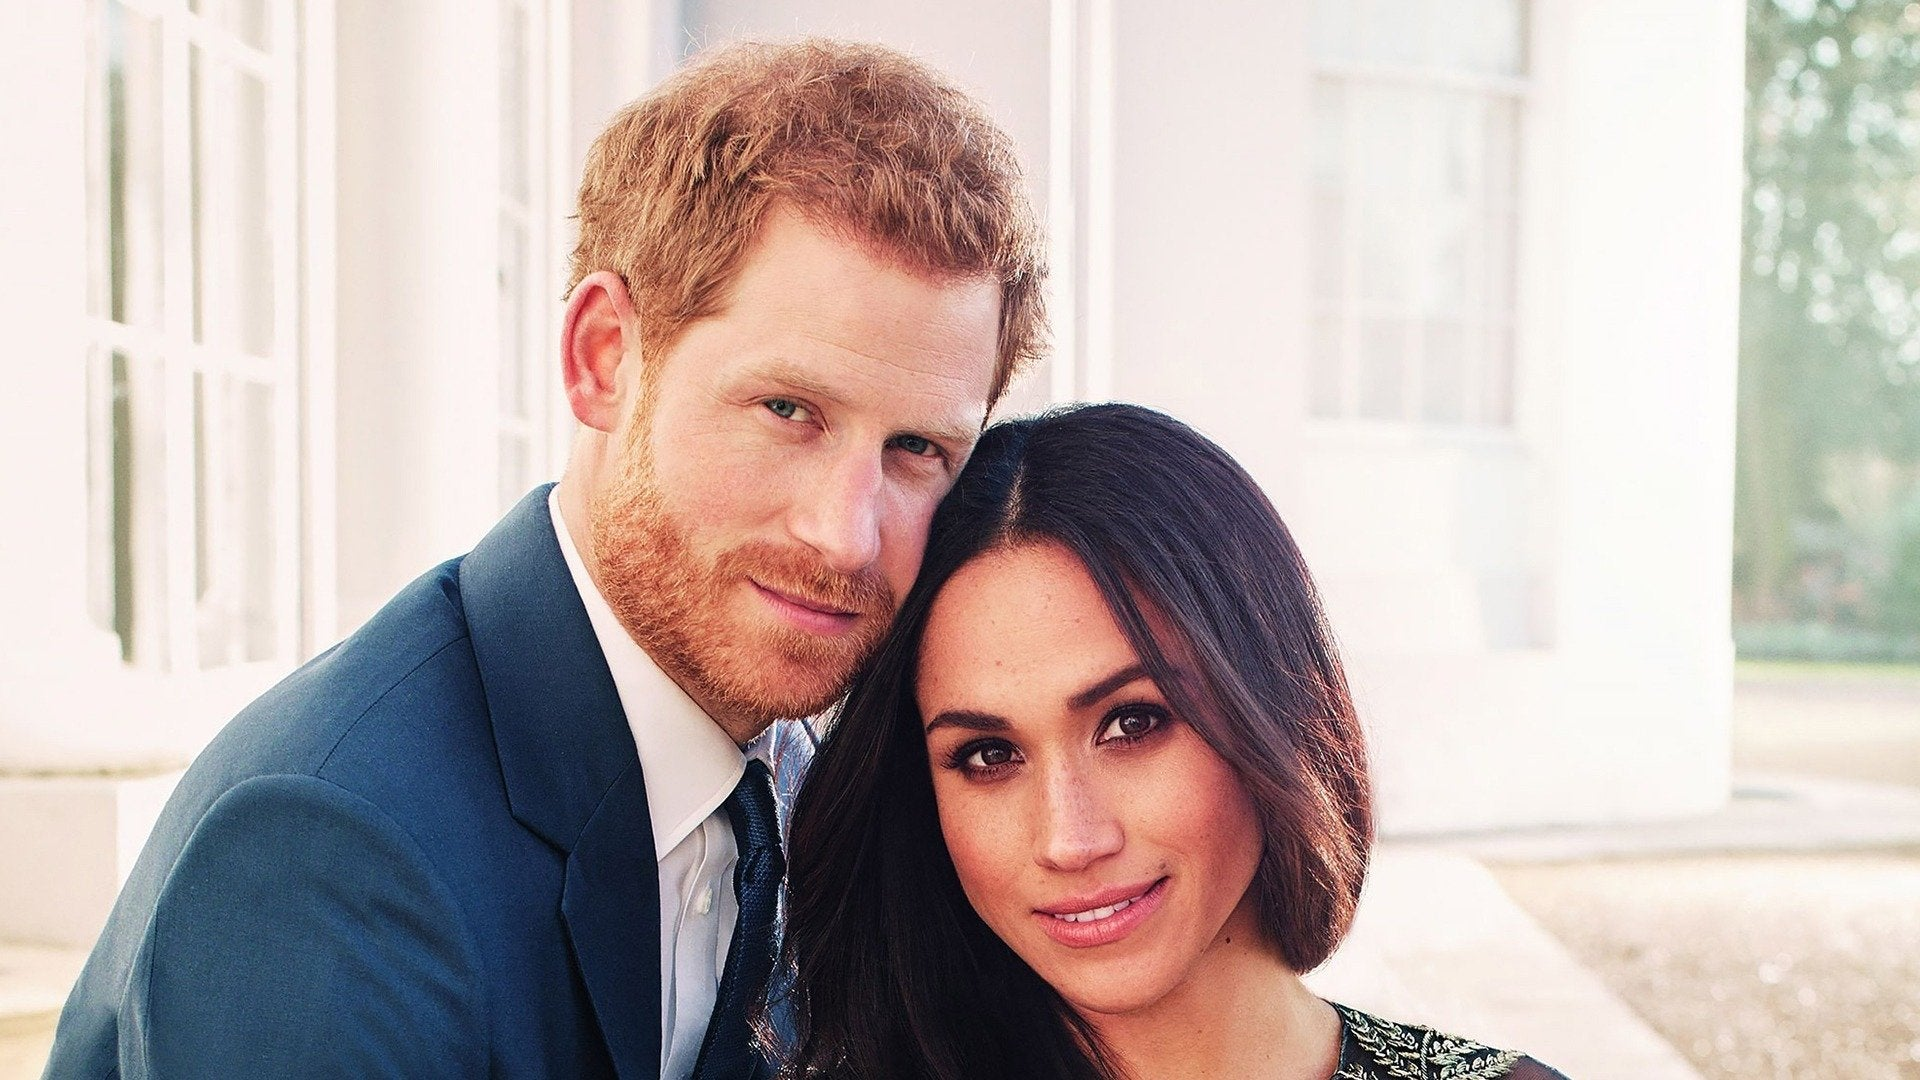 Harry and Meghan: A Royal Wedding